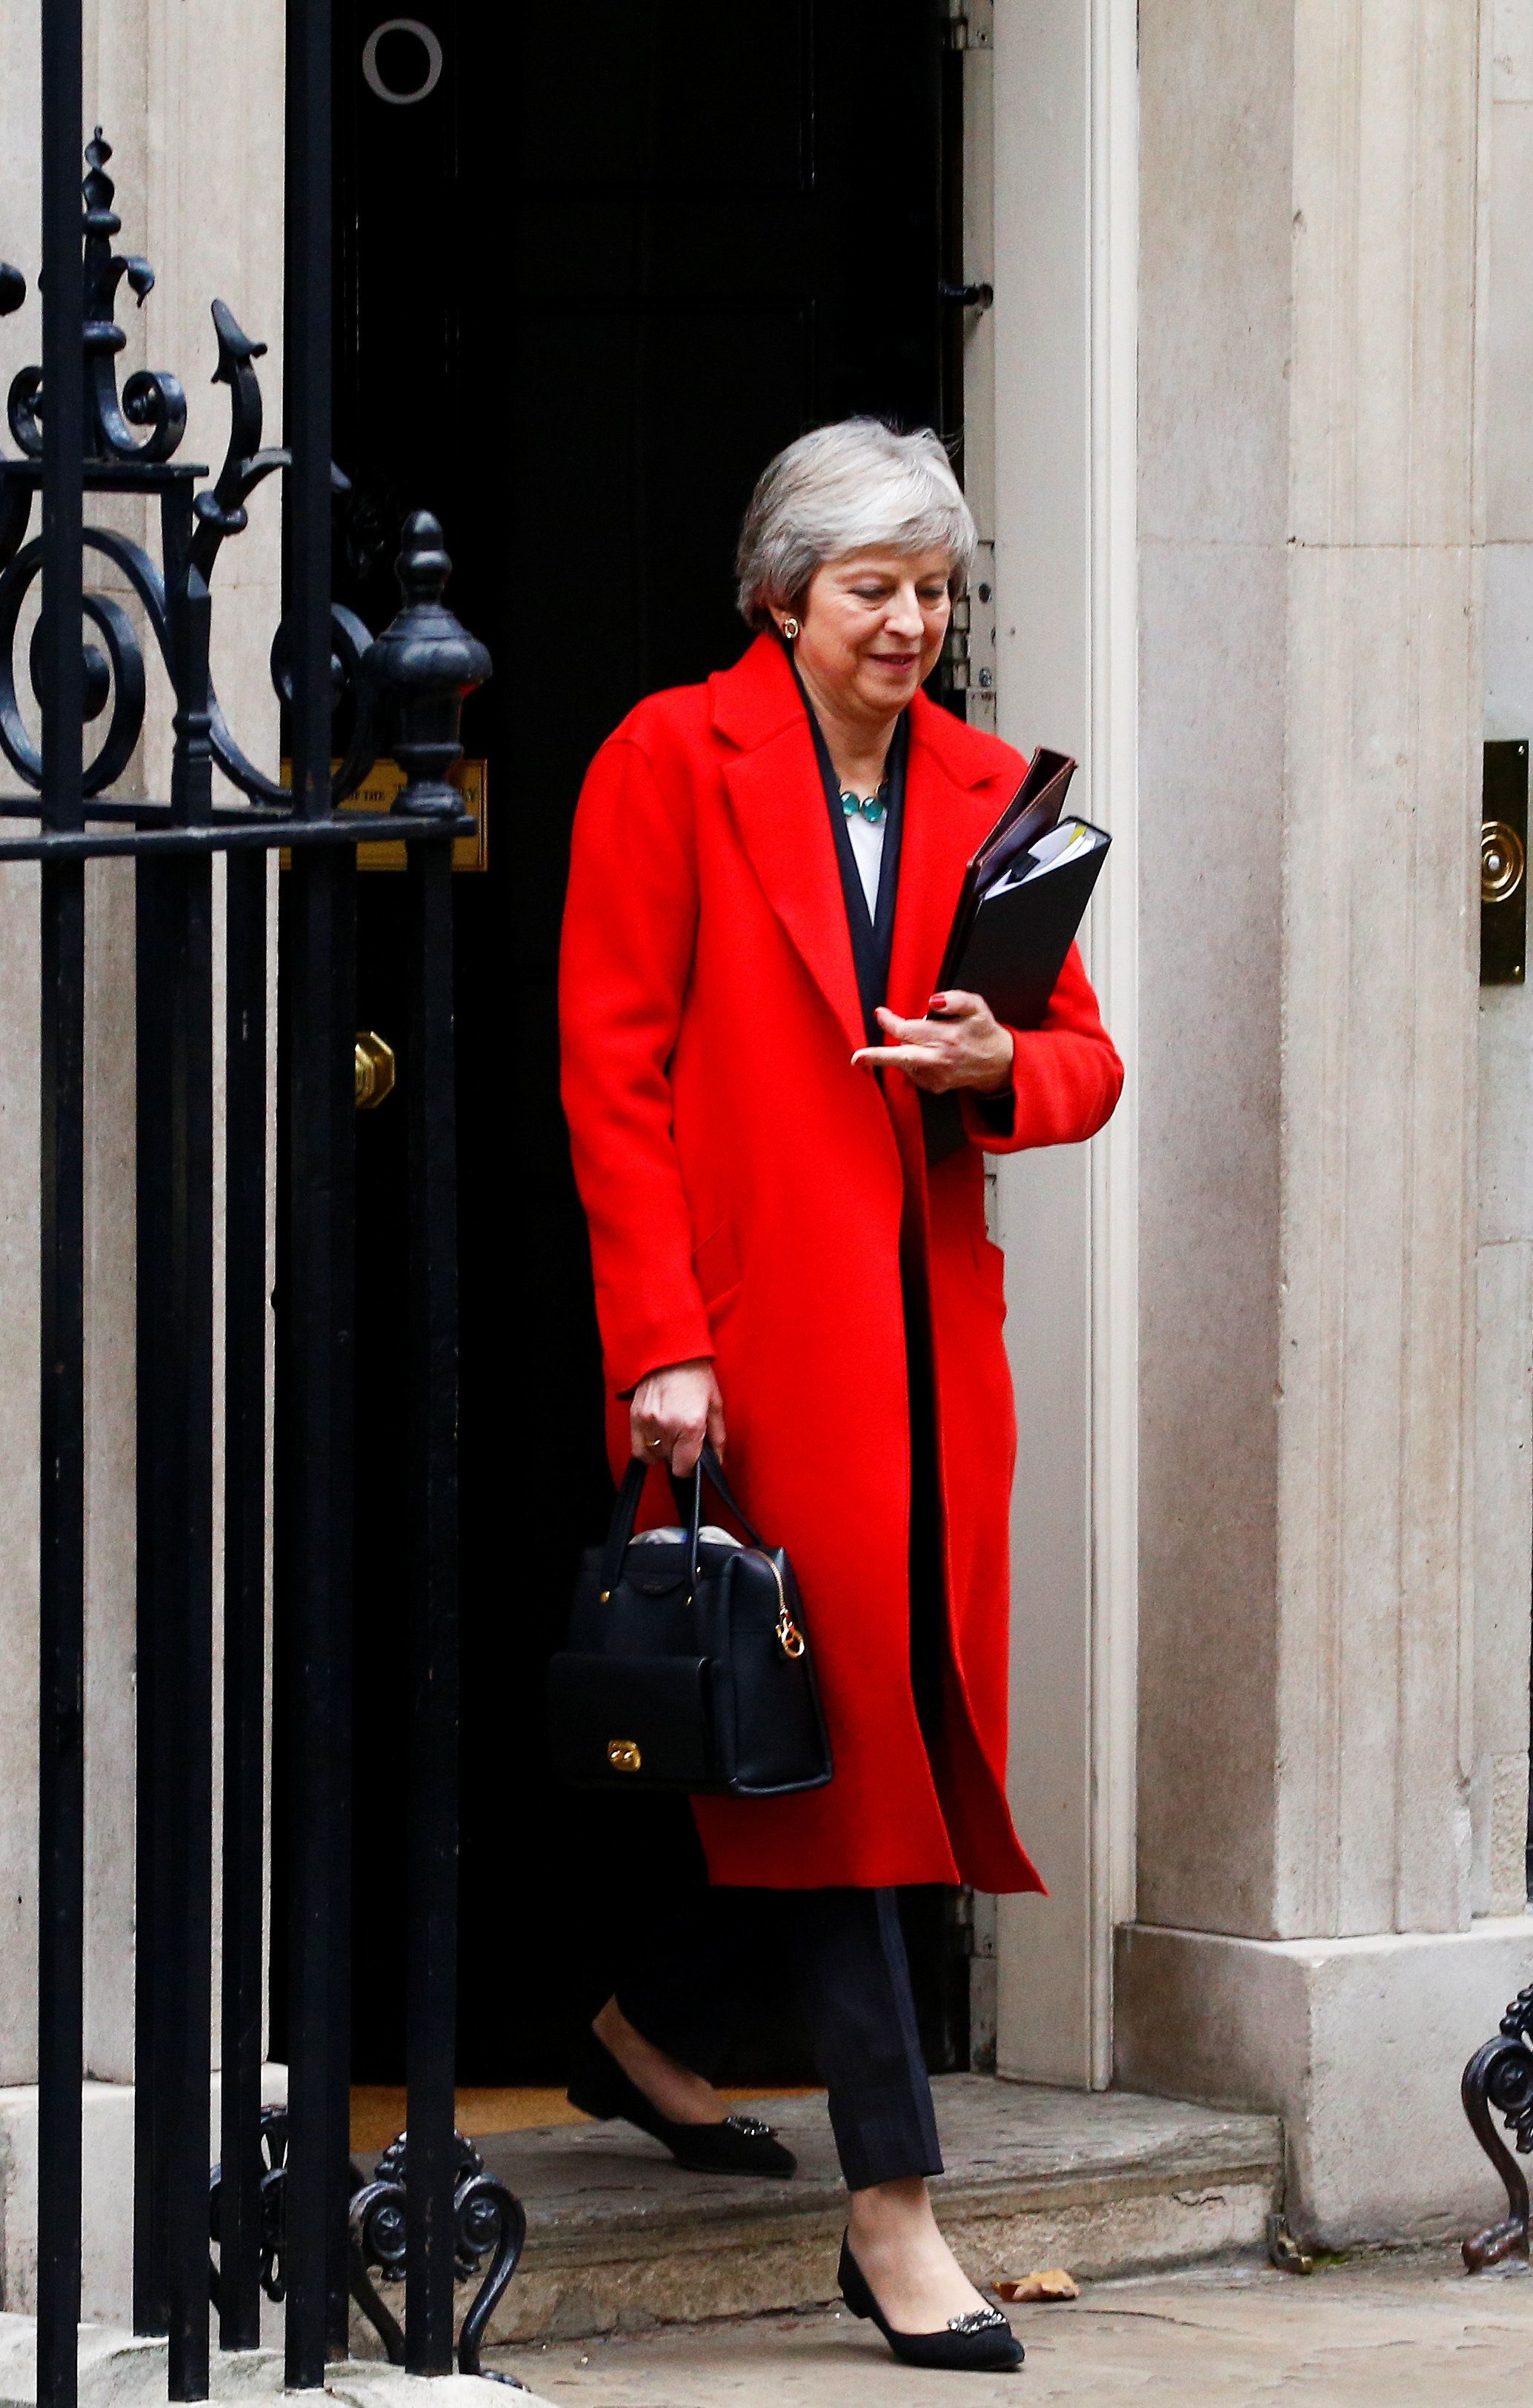 Britain's Prime Minister, Theresa May, leaves 10 Downing Street, to make a statement in the House of Commons, in London, Britain November 15, 2018.    REUTERS/Henry Nicholls